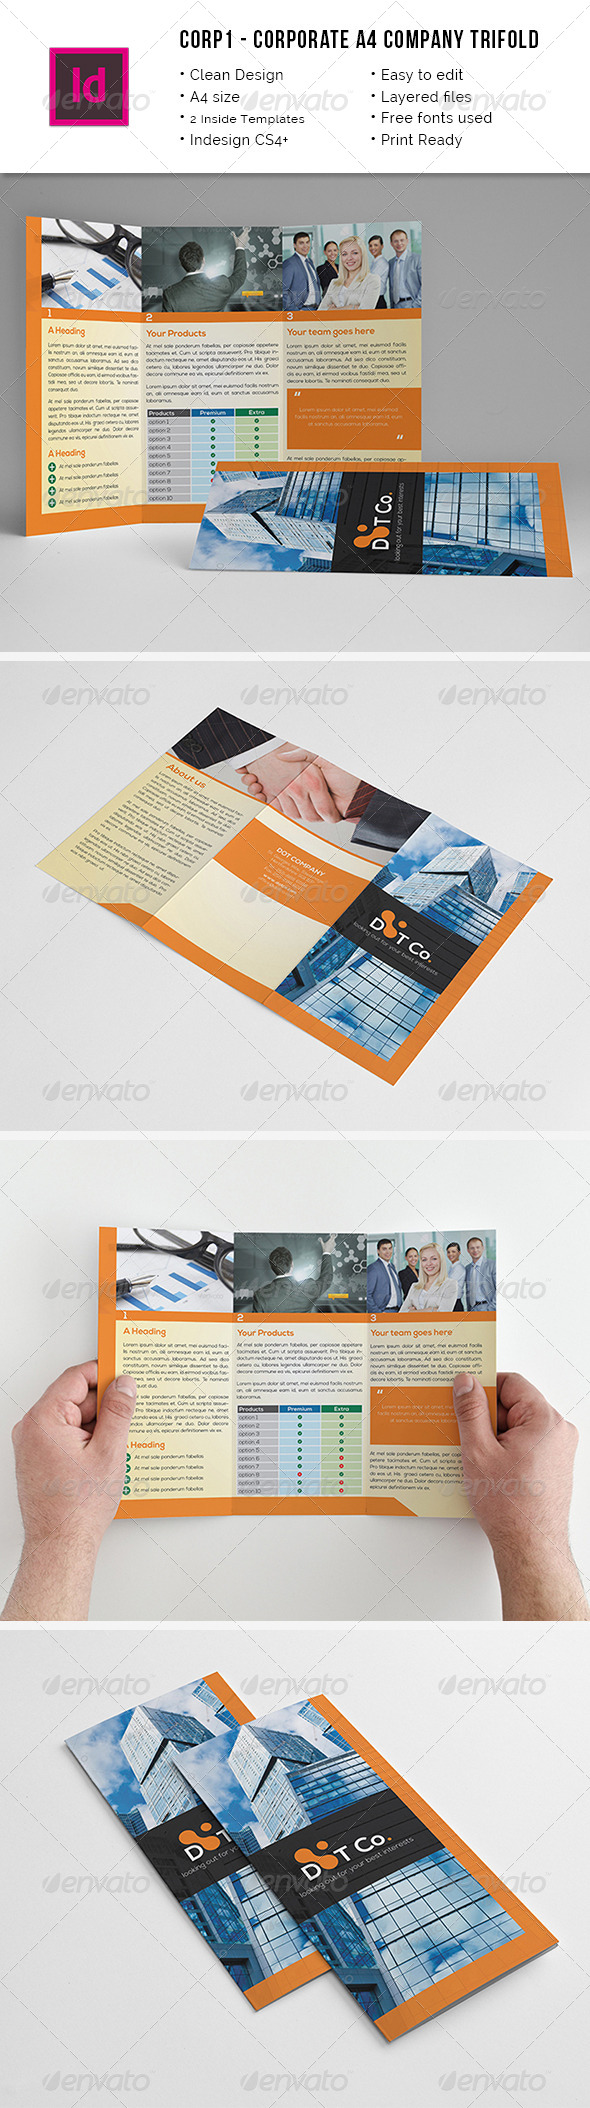 Corporate Trifold A4 Brochure - Corporate Brochures